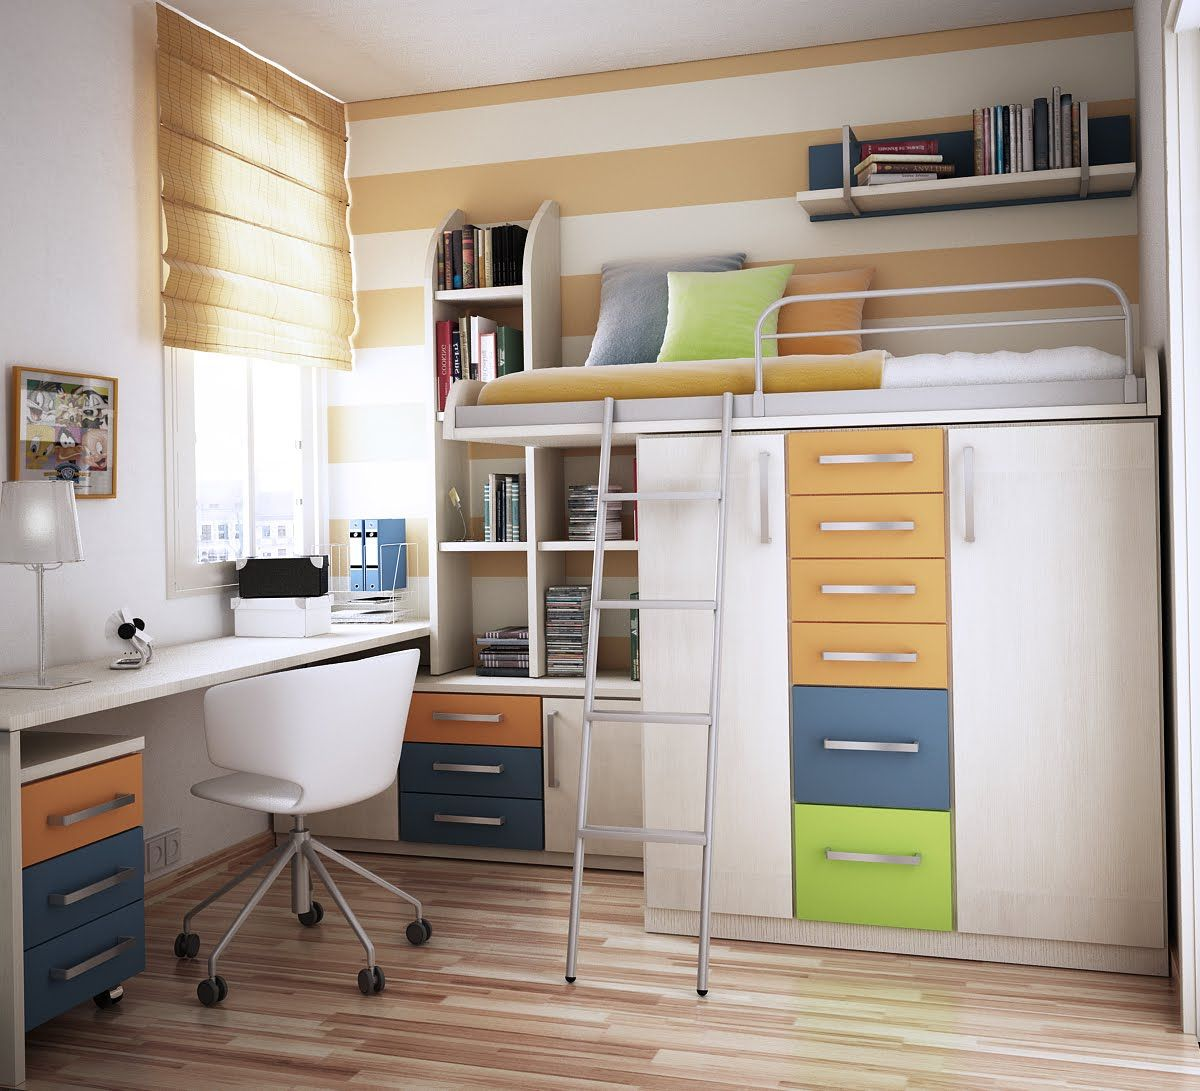 25 Cool Bed Ideas For Small Rooms. 25 Cool Bed Ideas For Small Rooms   Small rooms  Bedroom ideas and